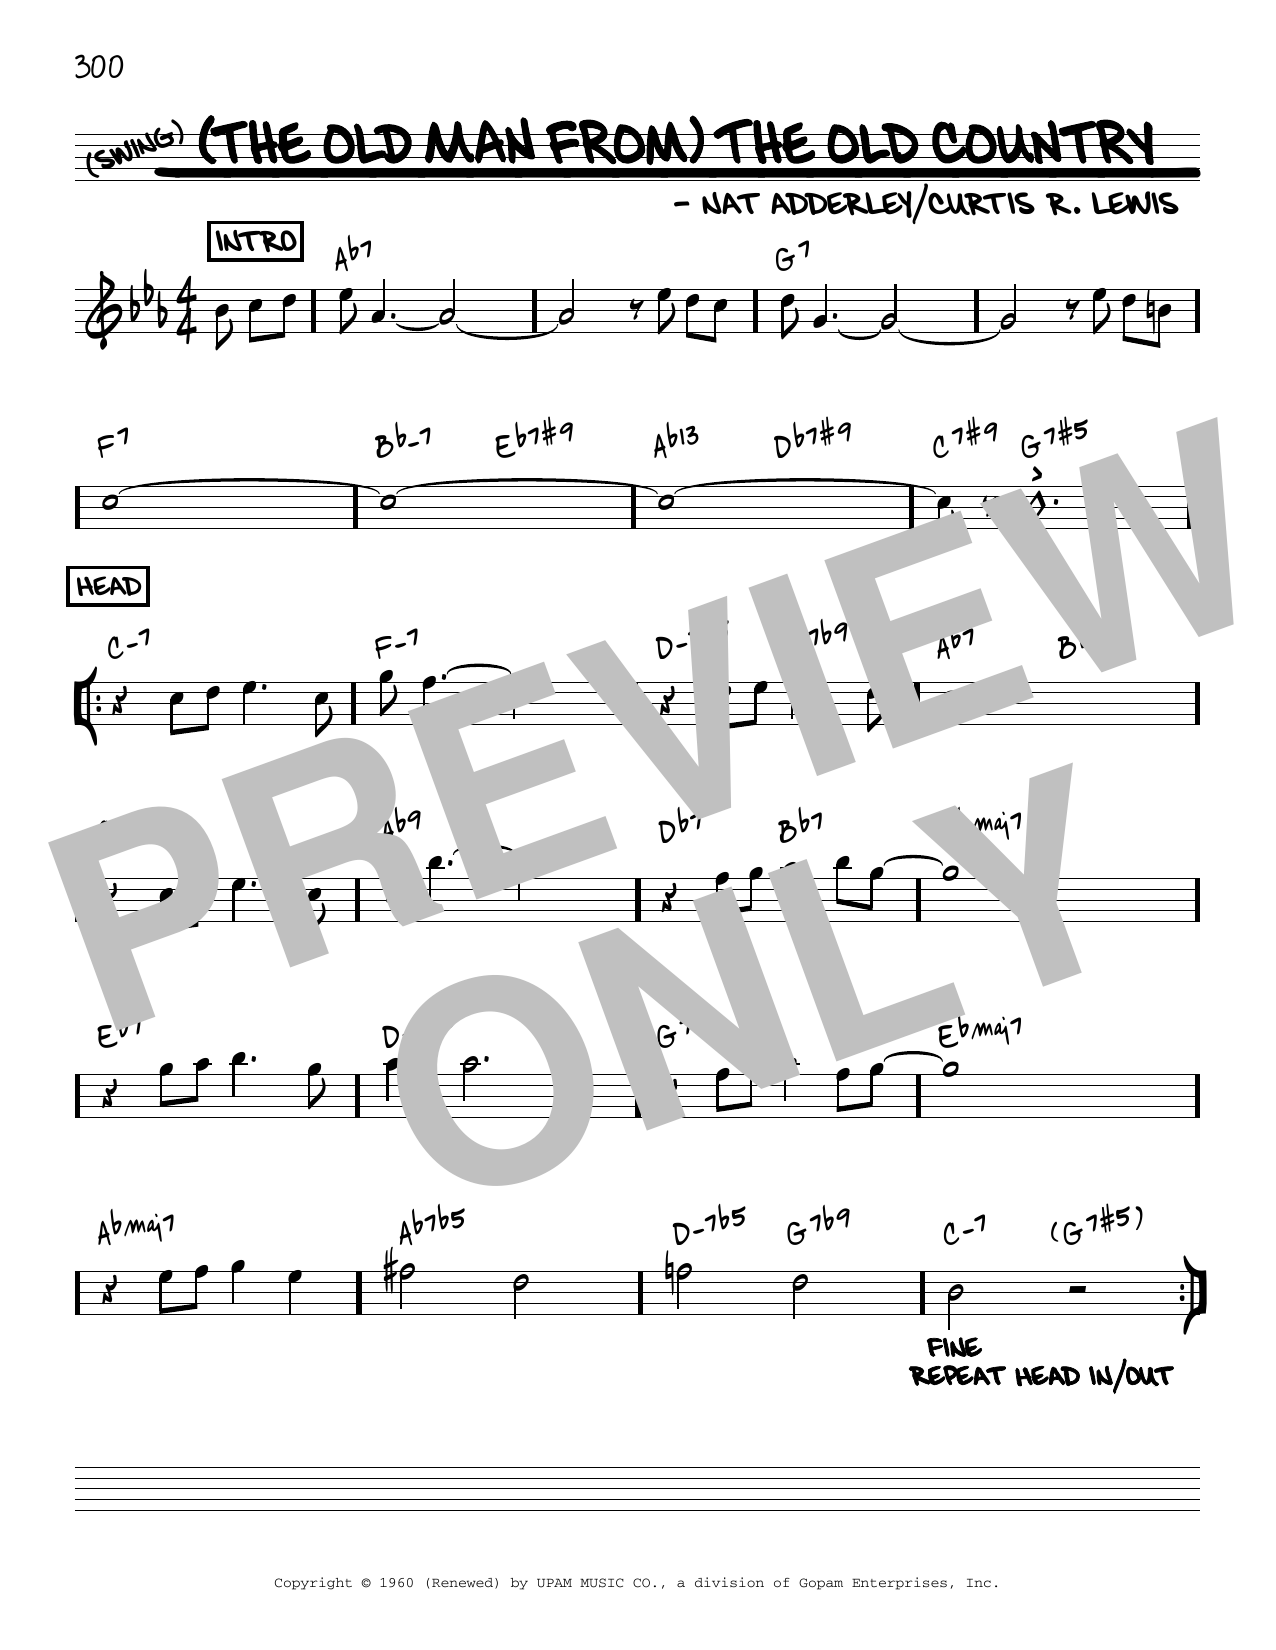 Nat Adderley (The Old Man From) The Old Country [Reharmonized version] (arr. Jack Grassel) sheet music notes printable PDF score